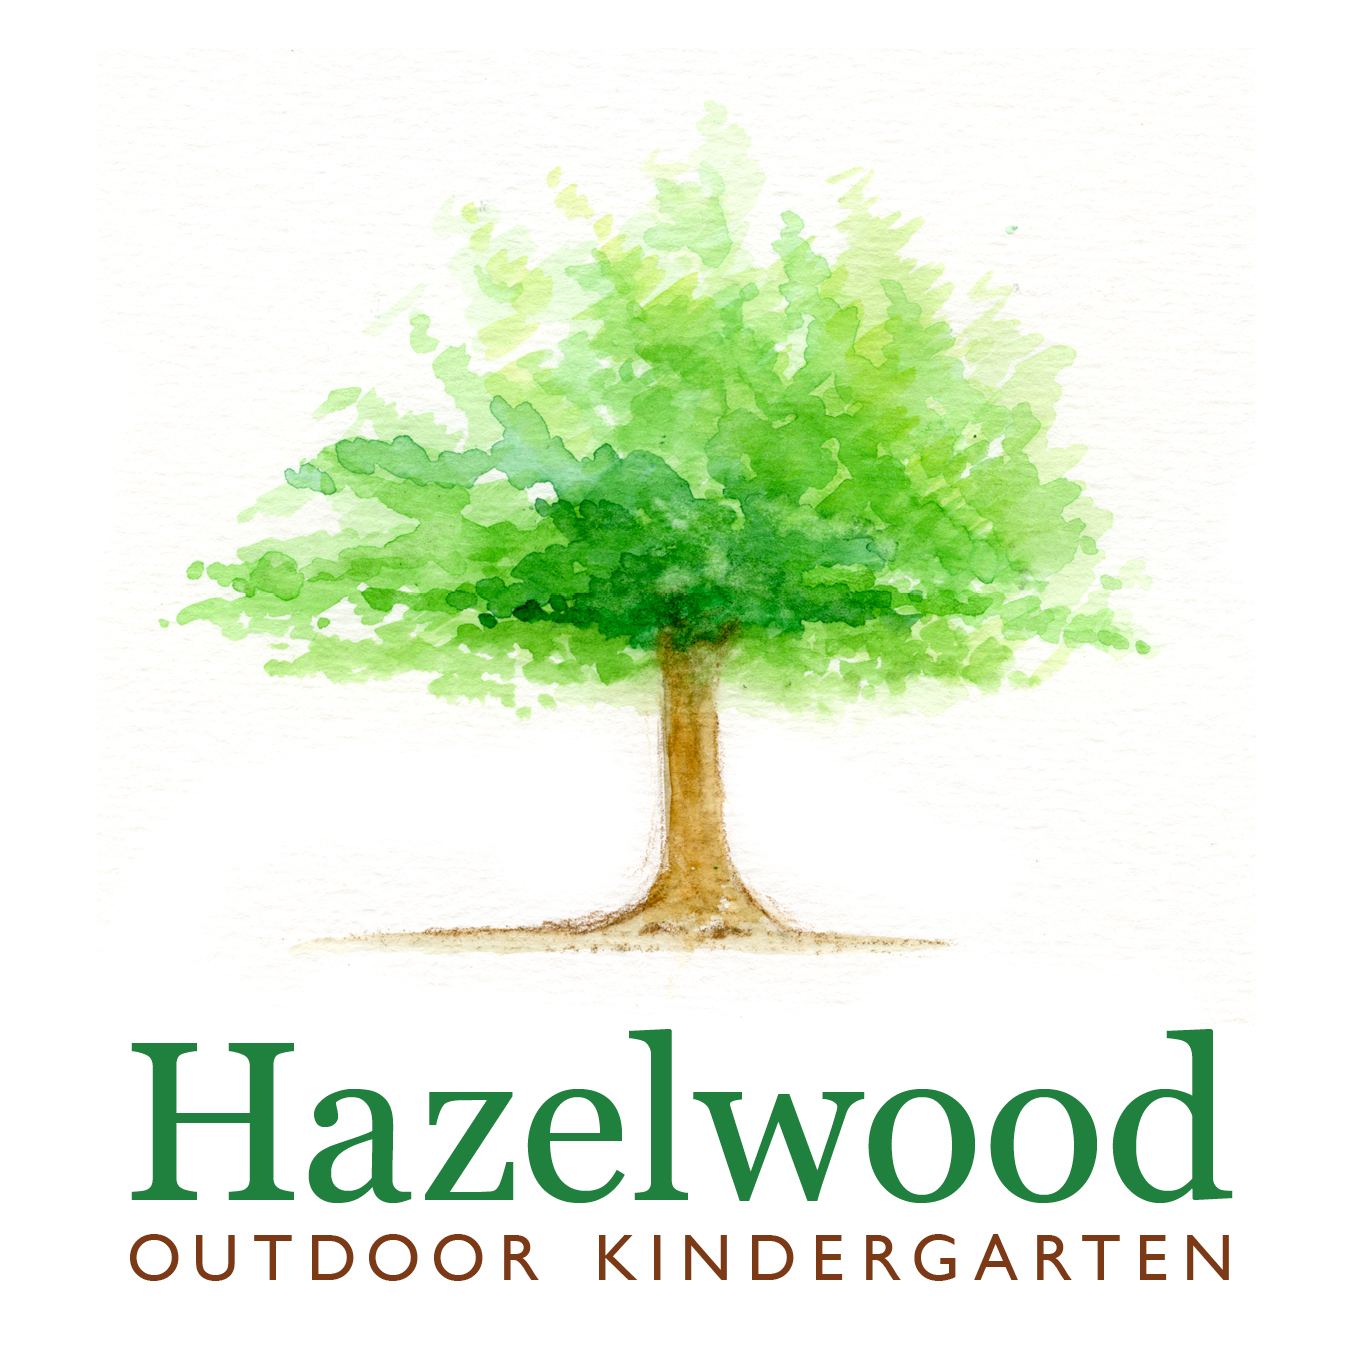 Hazelwood Outdoor Kindergarten